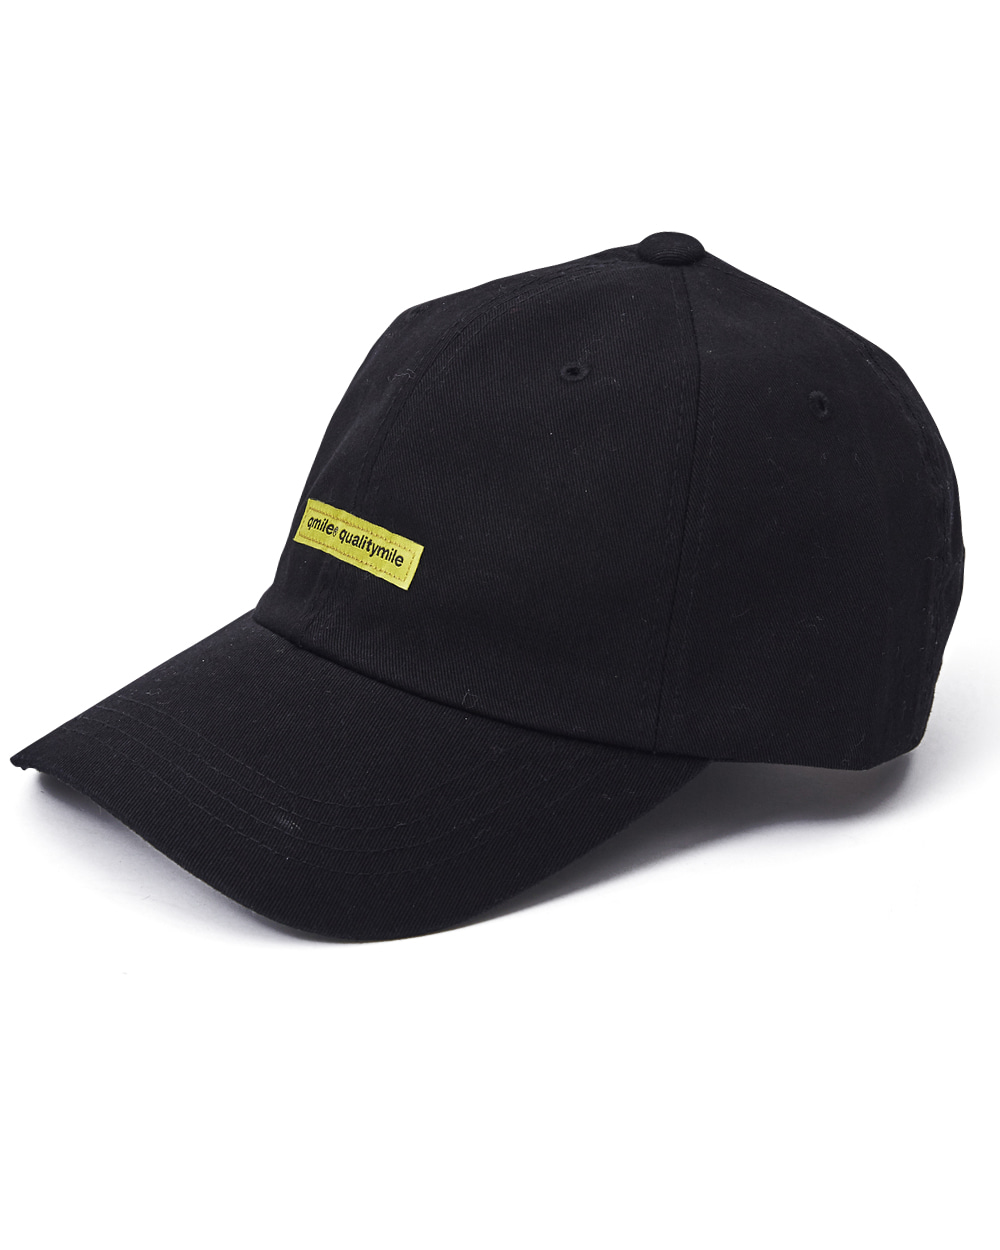 TYMAX YELLOW LABEL BALLCAP | BLACK